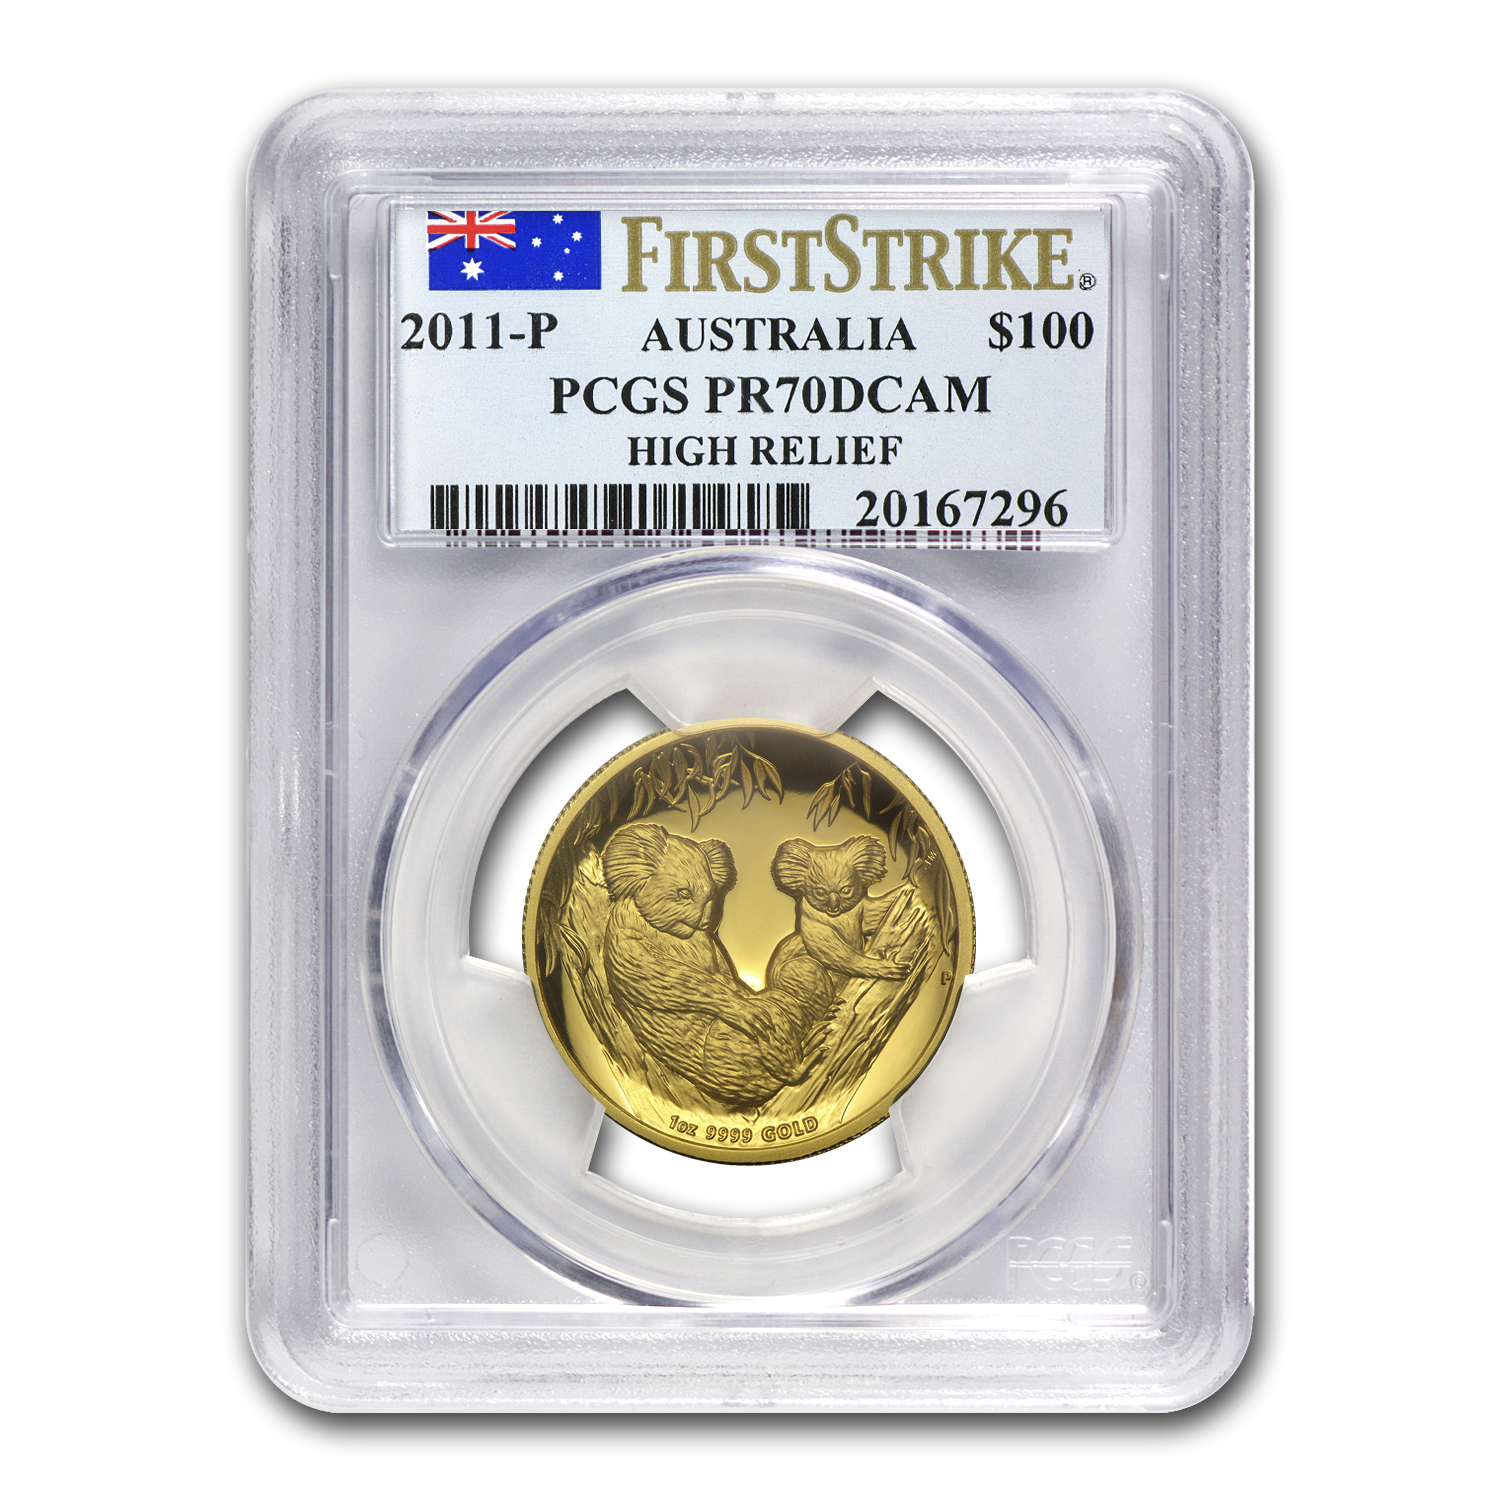 2011-P Australia 1 oz Gold Koala PR-70 PCGS (FS, High Relief)